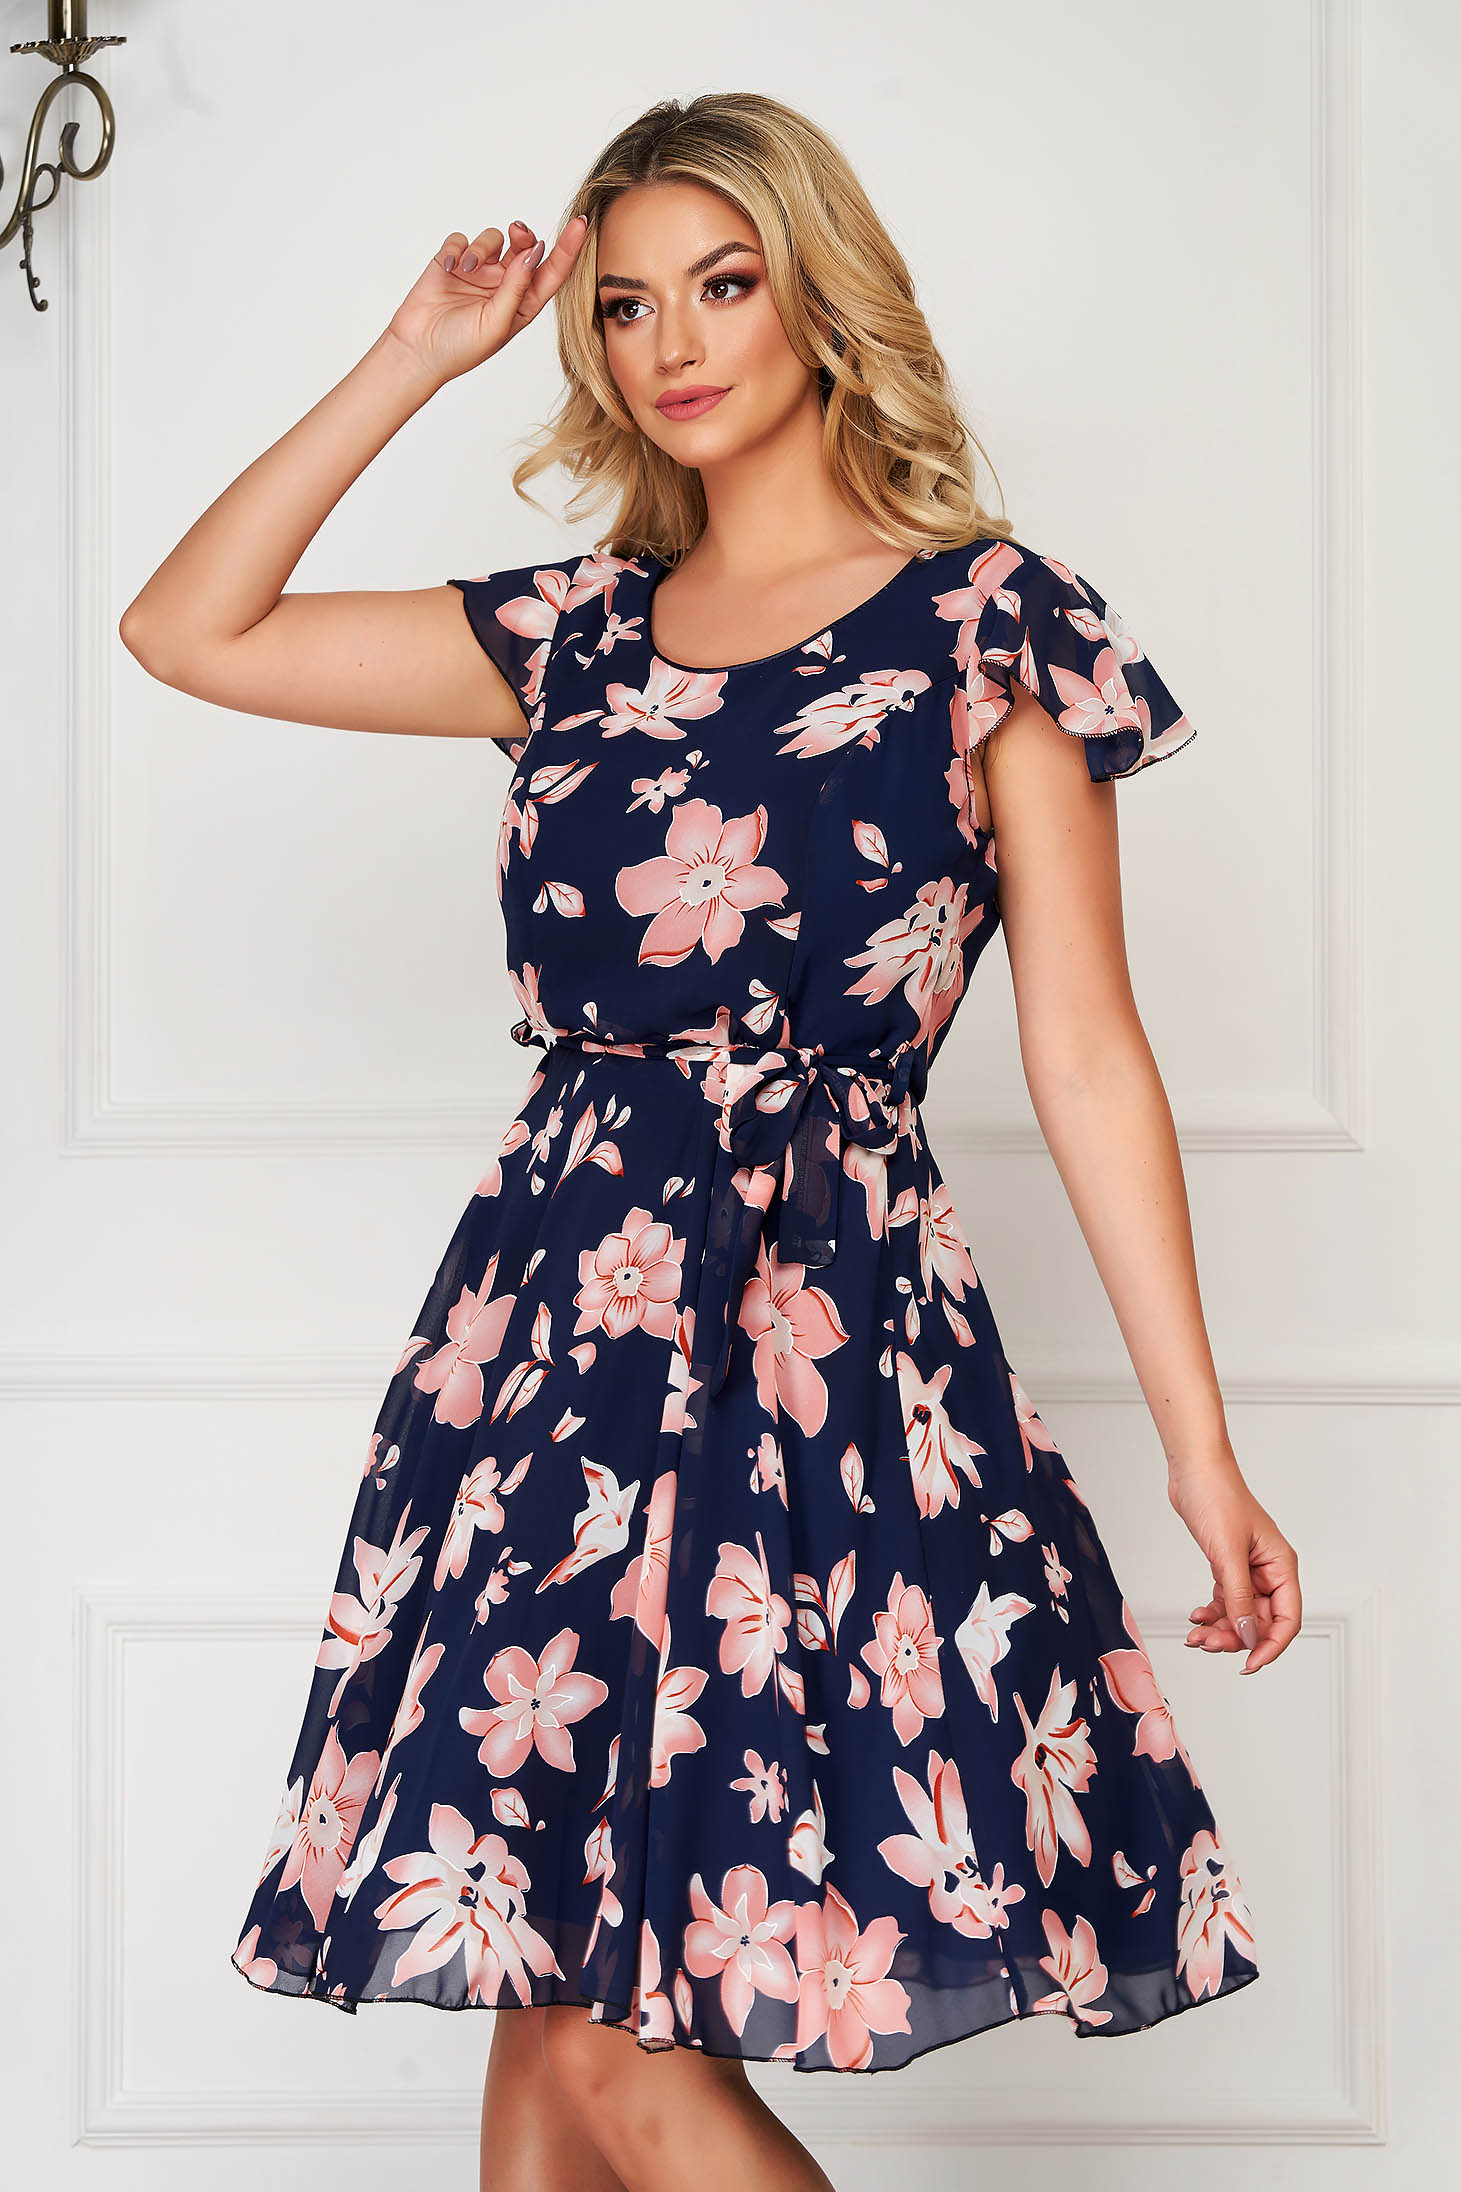 Darkblue dress elegant daily cloche accessorized with tied waistband from veil fabric with floral print